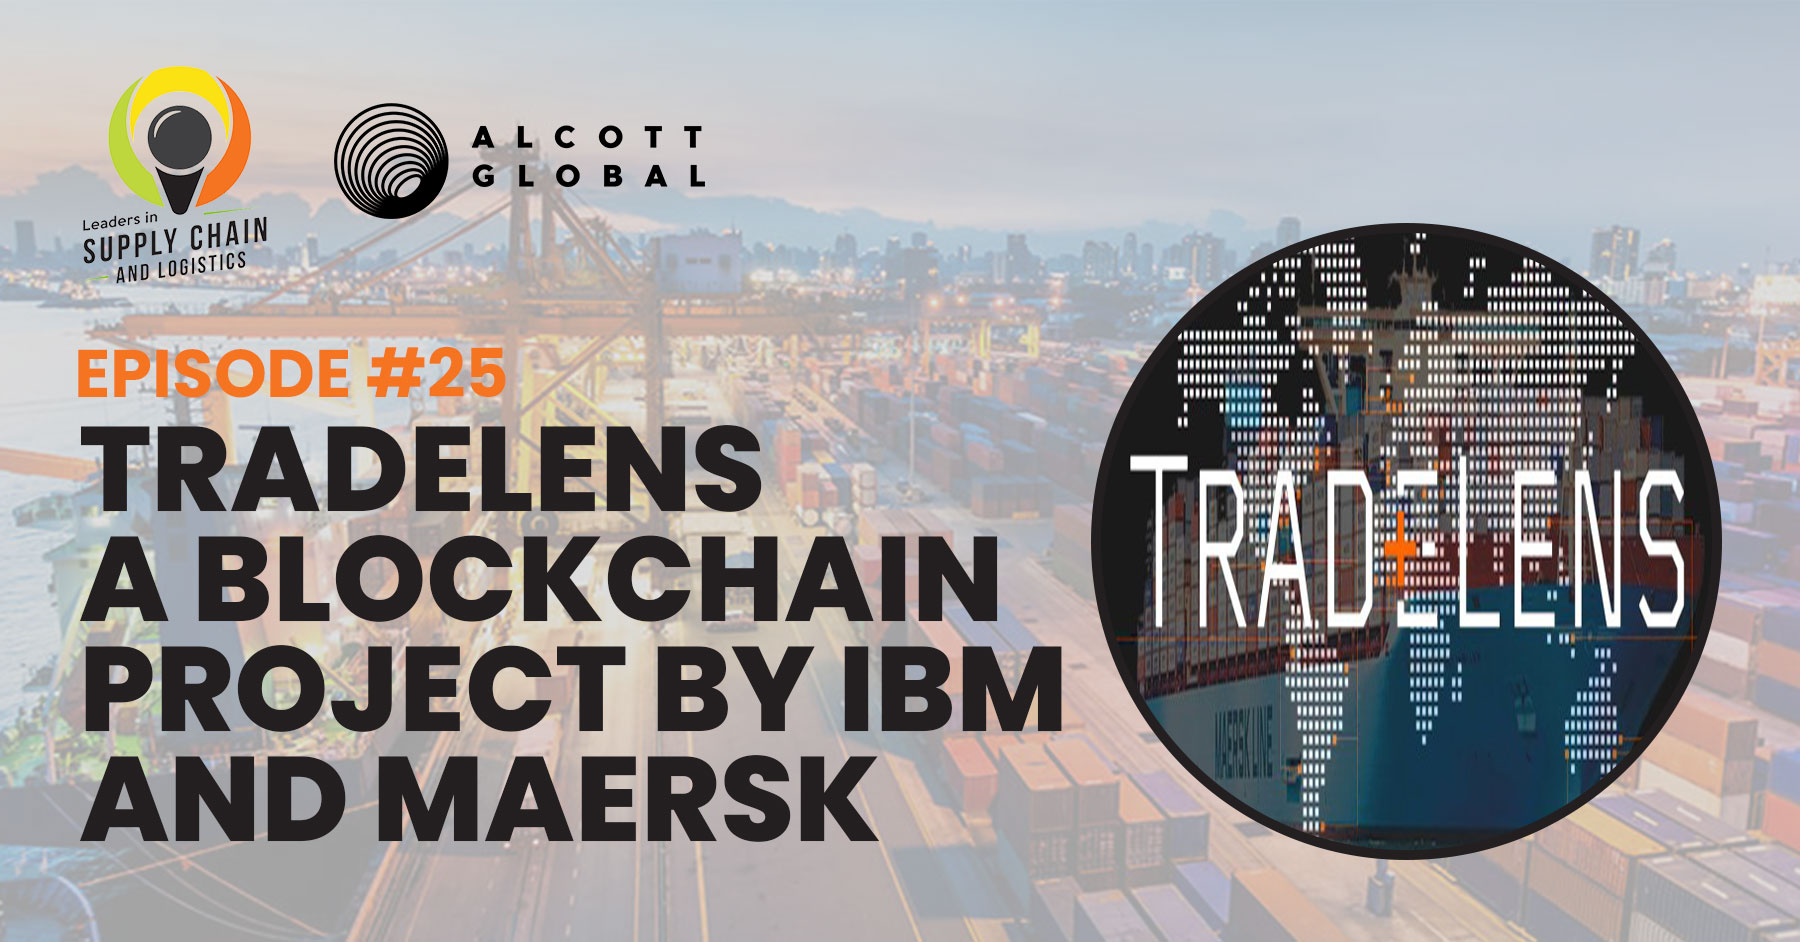 #25: TradeLens - a blockchain project by IBM and Maersk Featured Image